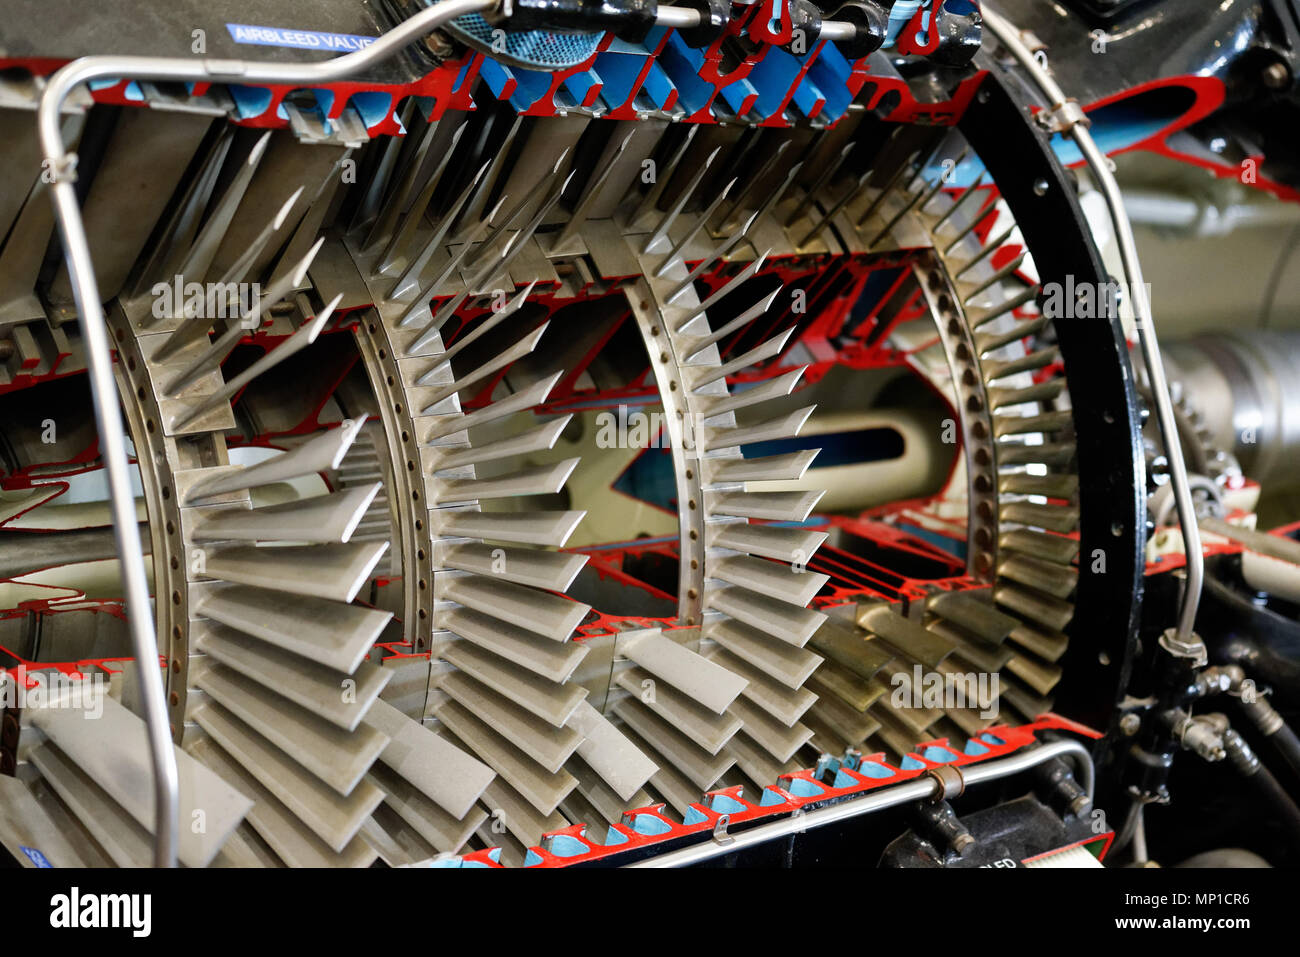 A cutaway model of a jet engine showing the turbine blades - Stock Image